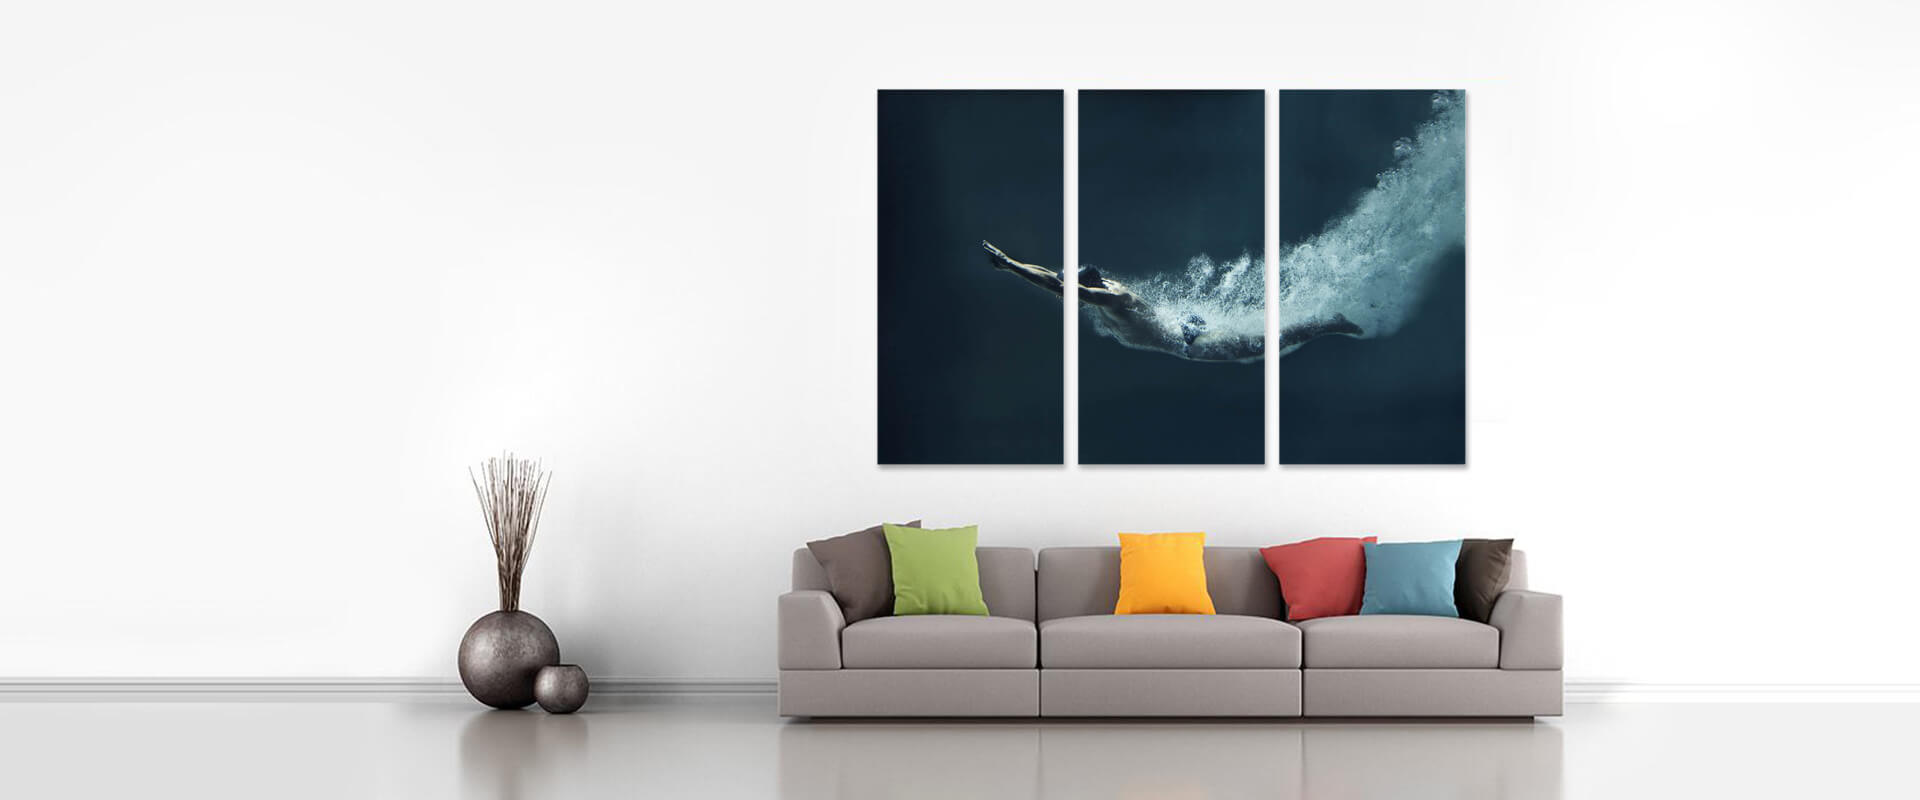 Art Panels — Abstract Art Panels | Buy Posters, Frames, Canvas, Digital Art & Large Size Prints